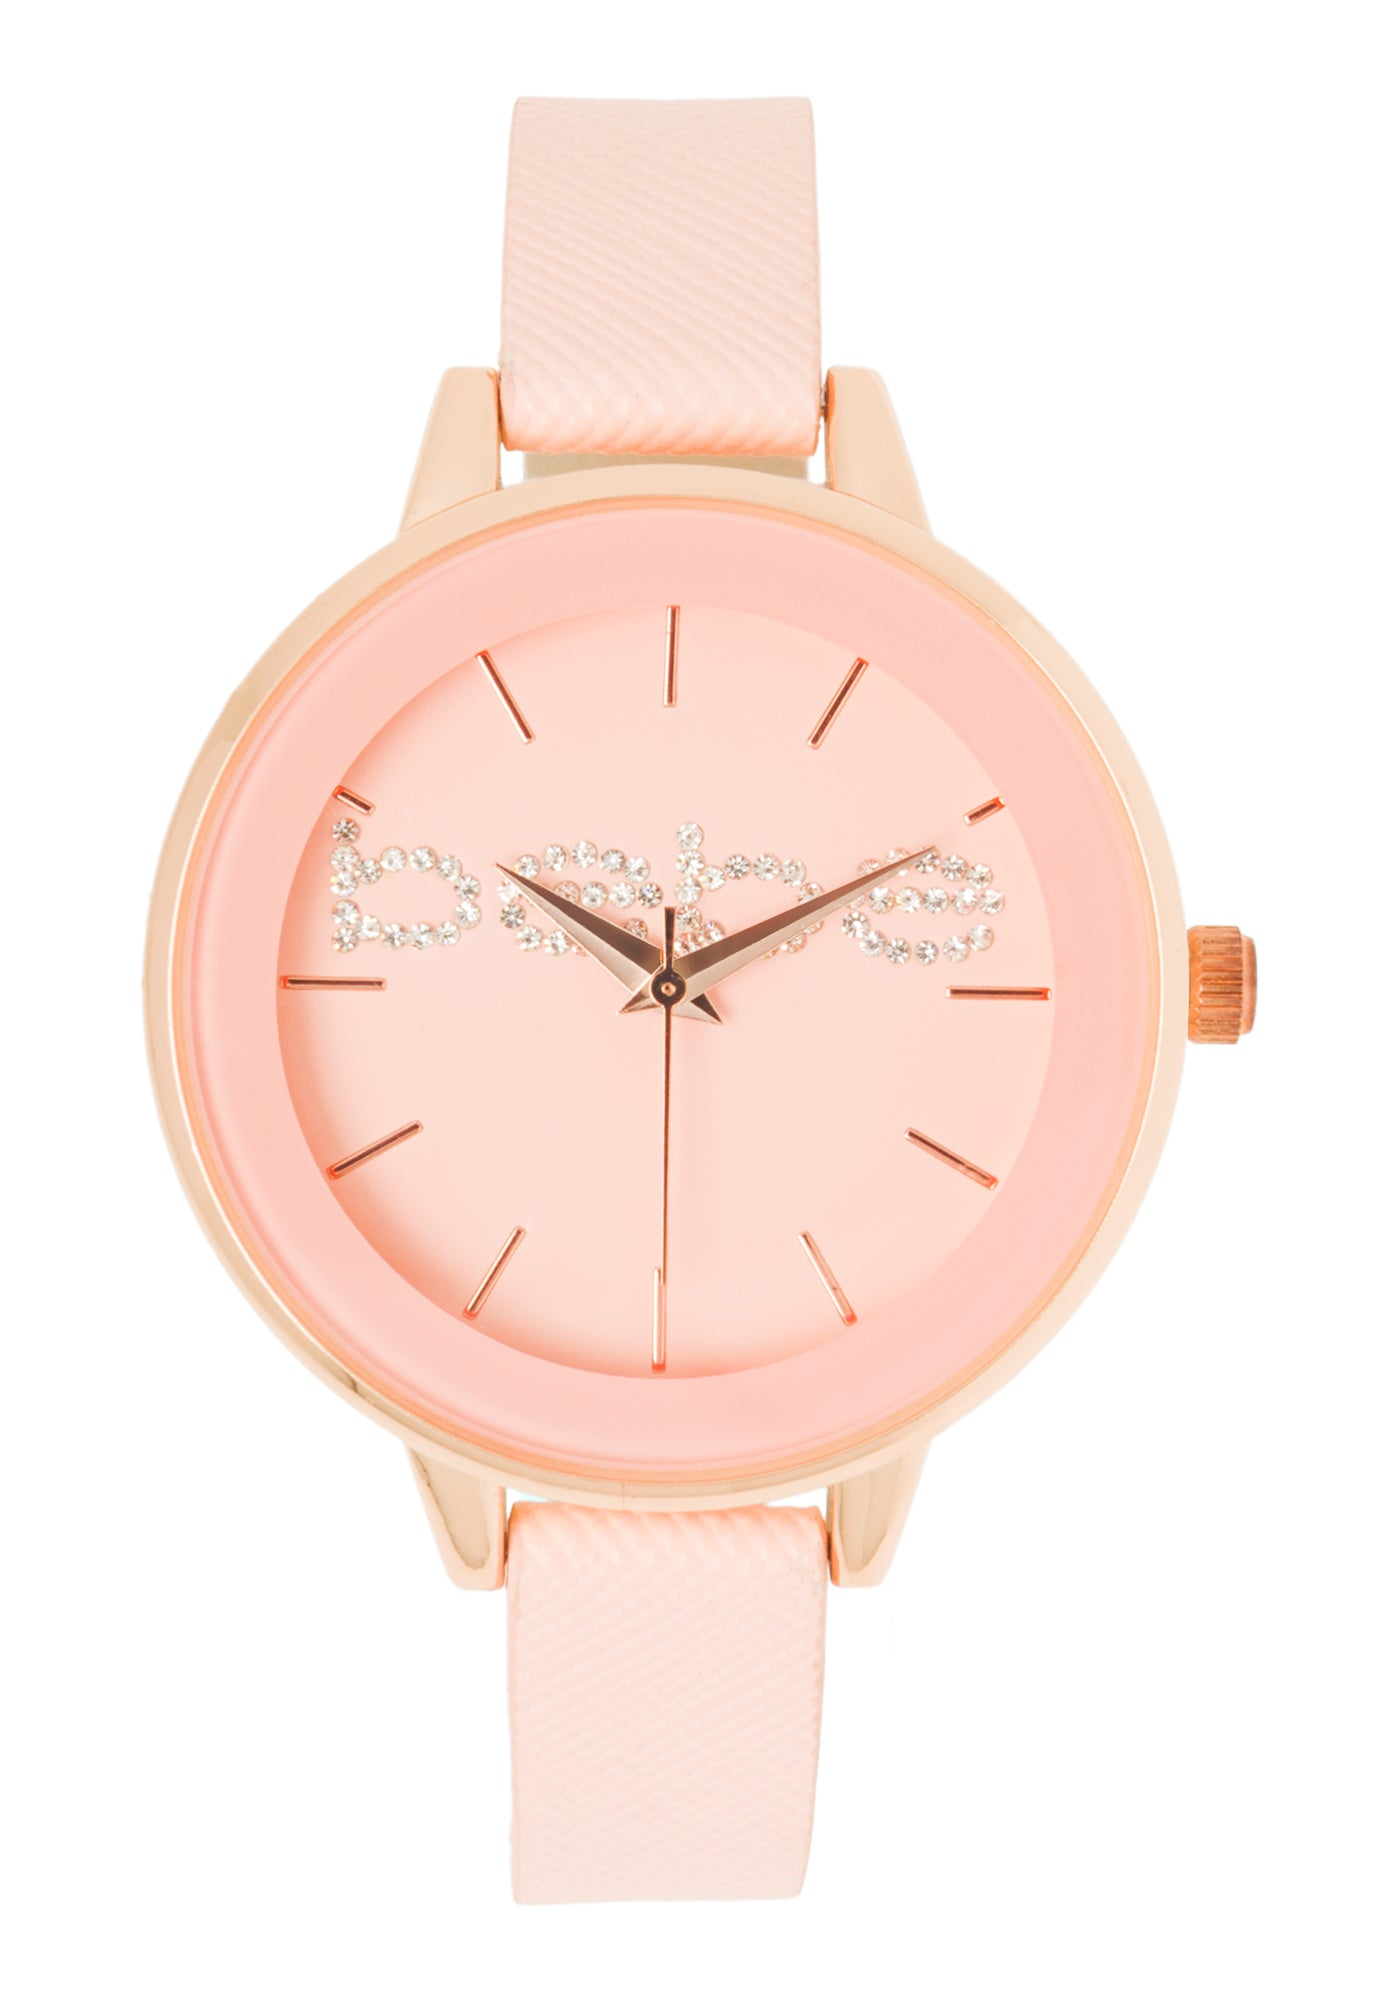 Bebe Women's Faux Leather Strap Watch in ROSE GOLD